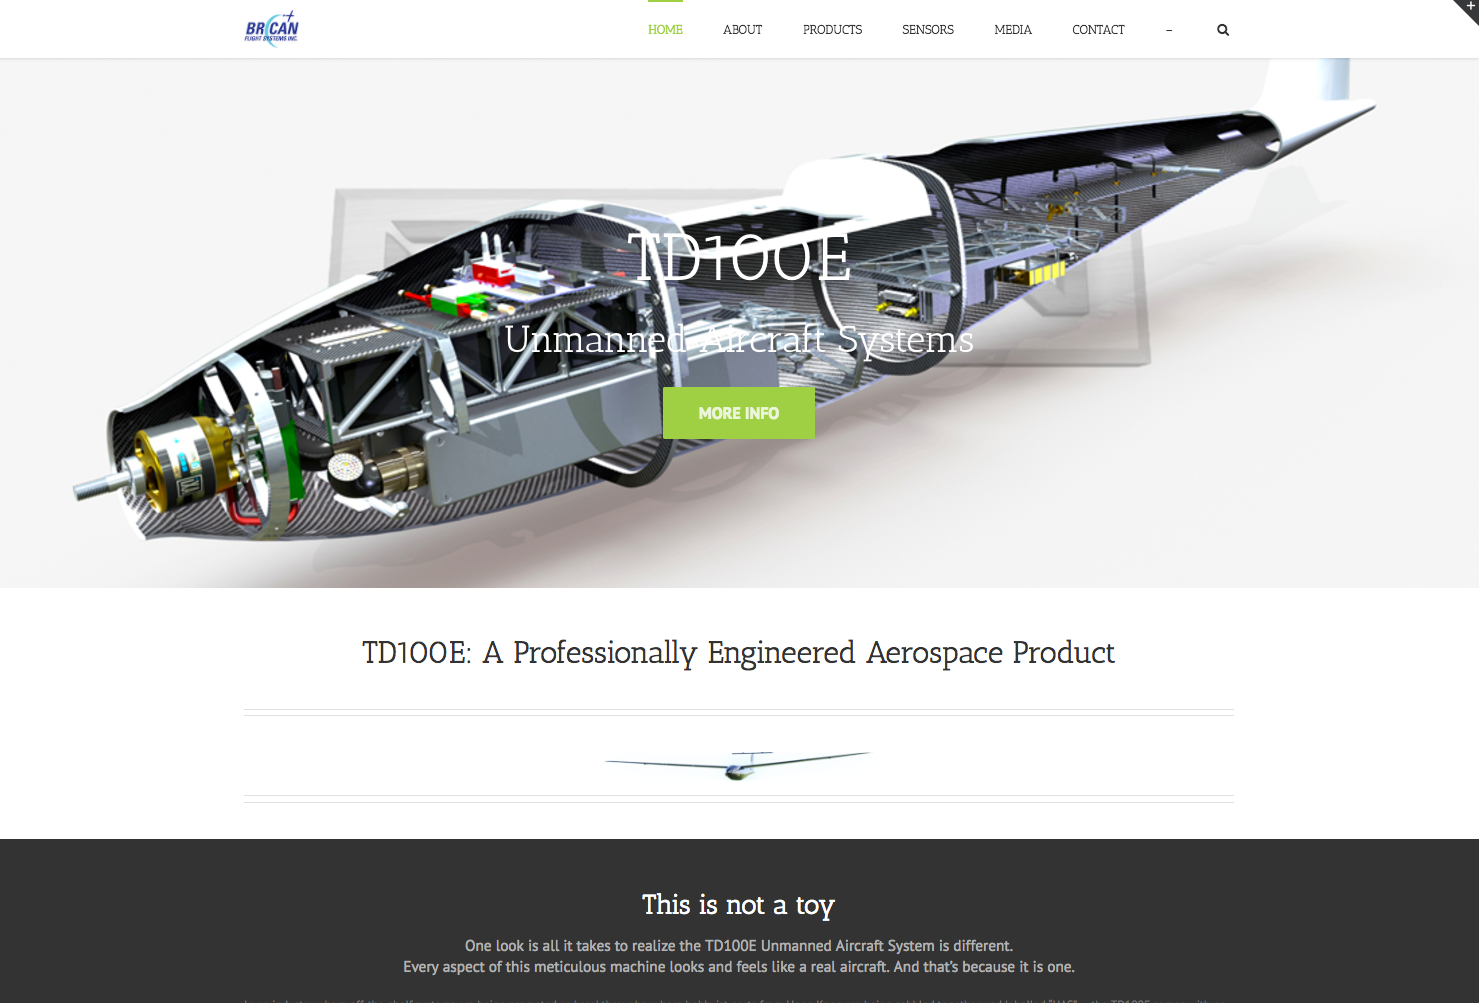 Brican Flight Systems Website